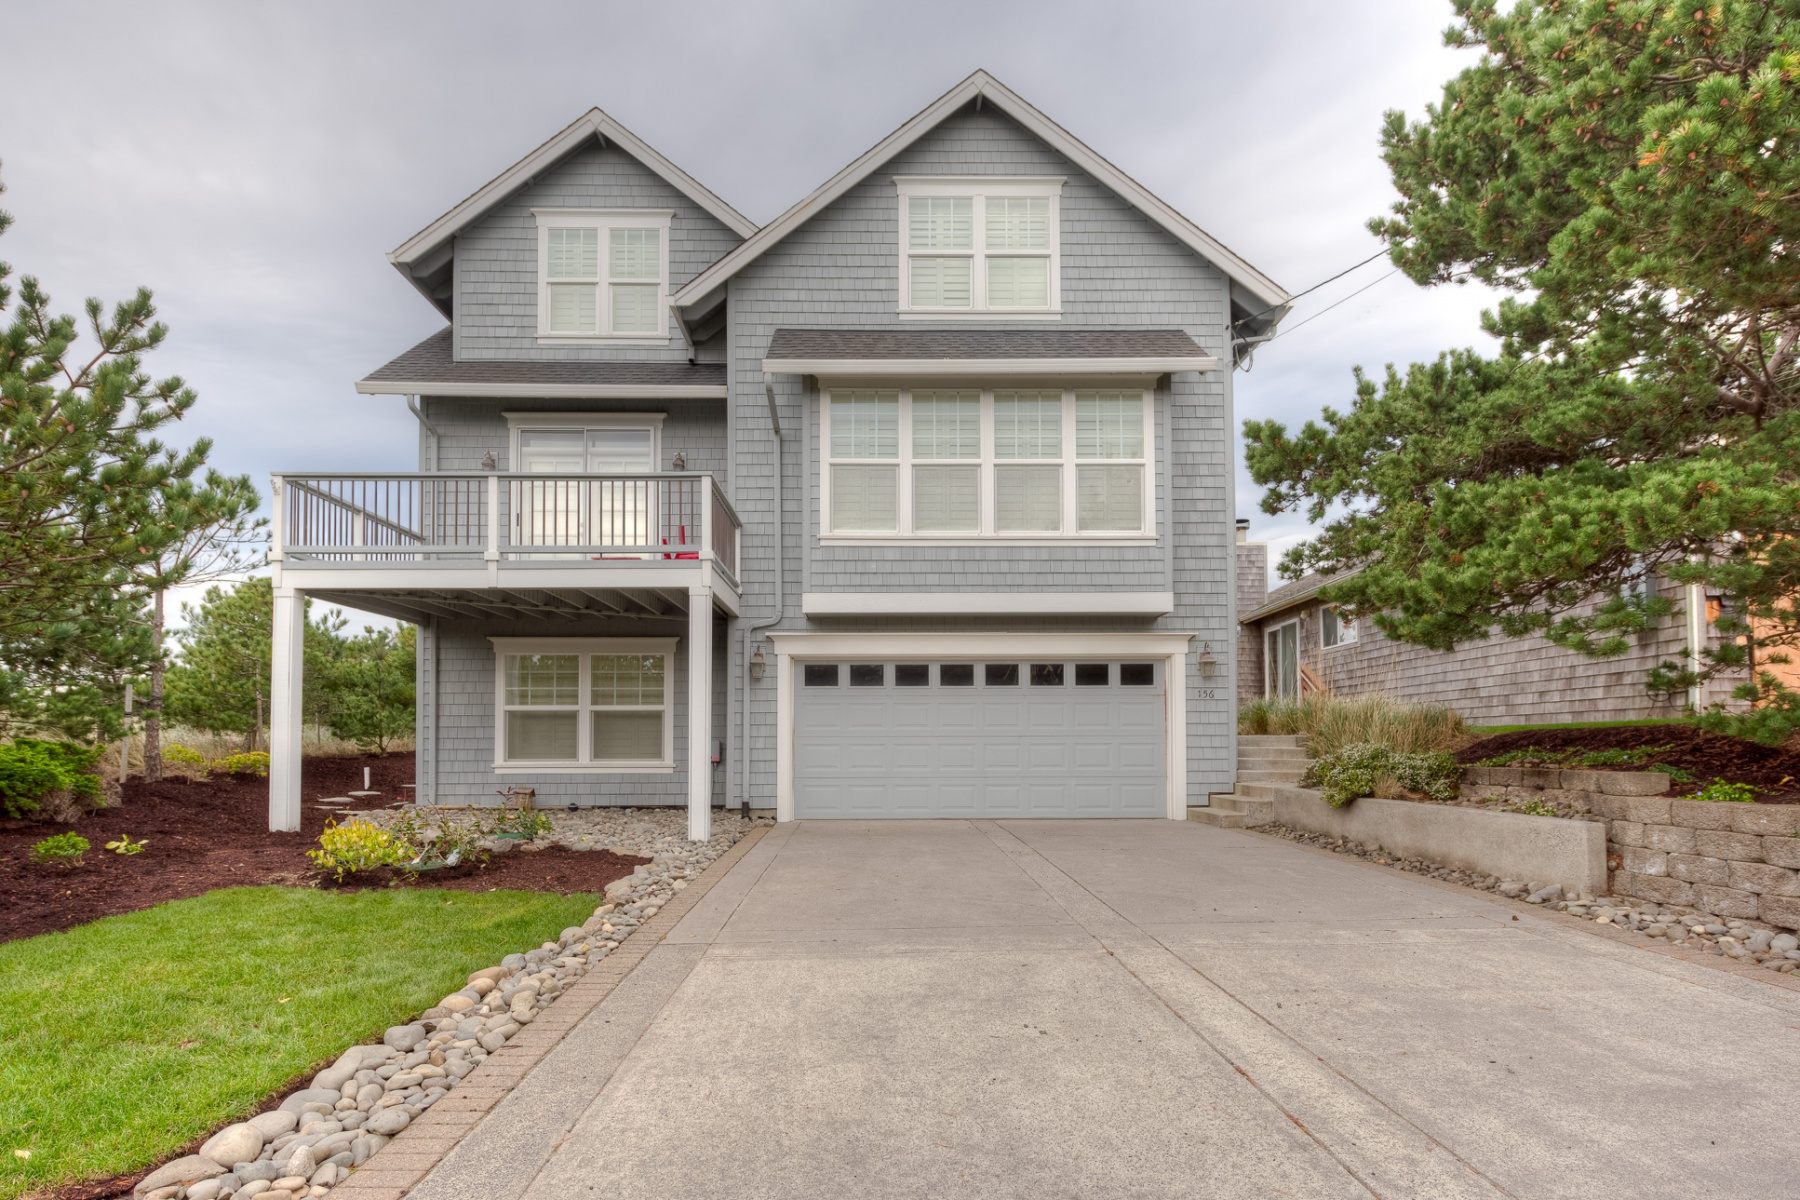 Single Family Home for Sale at 156 6th ST, GEARHART Gearhart, Oregon, 97138 United States